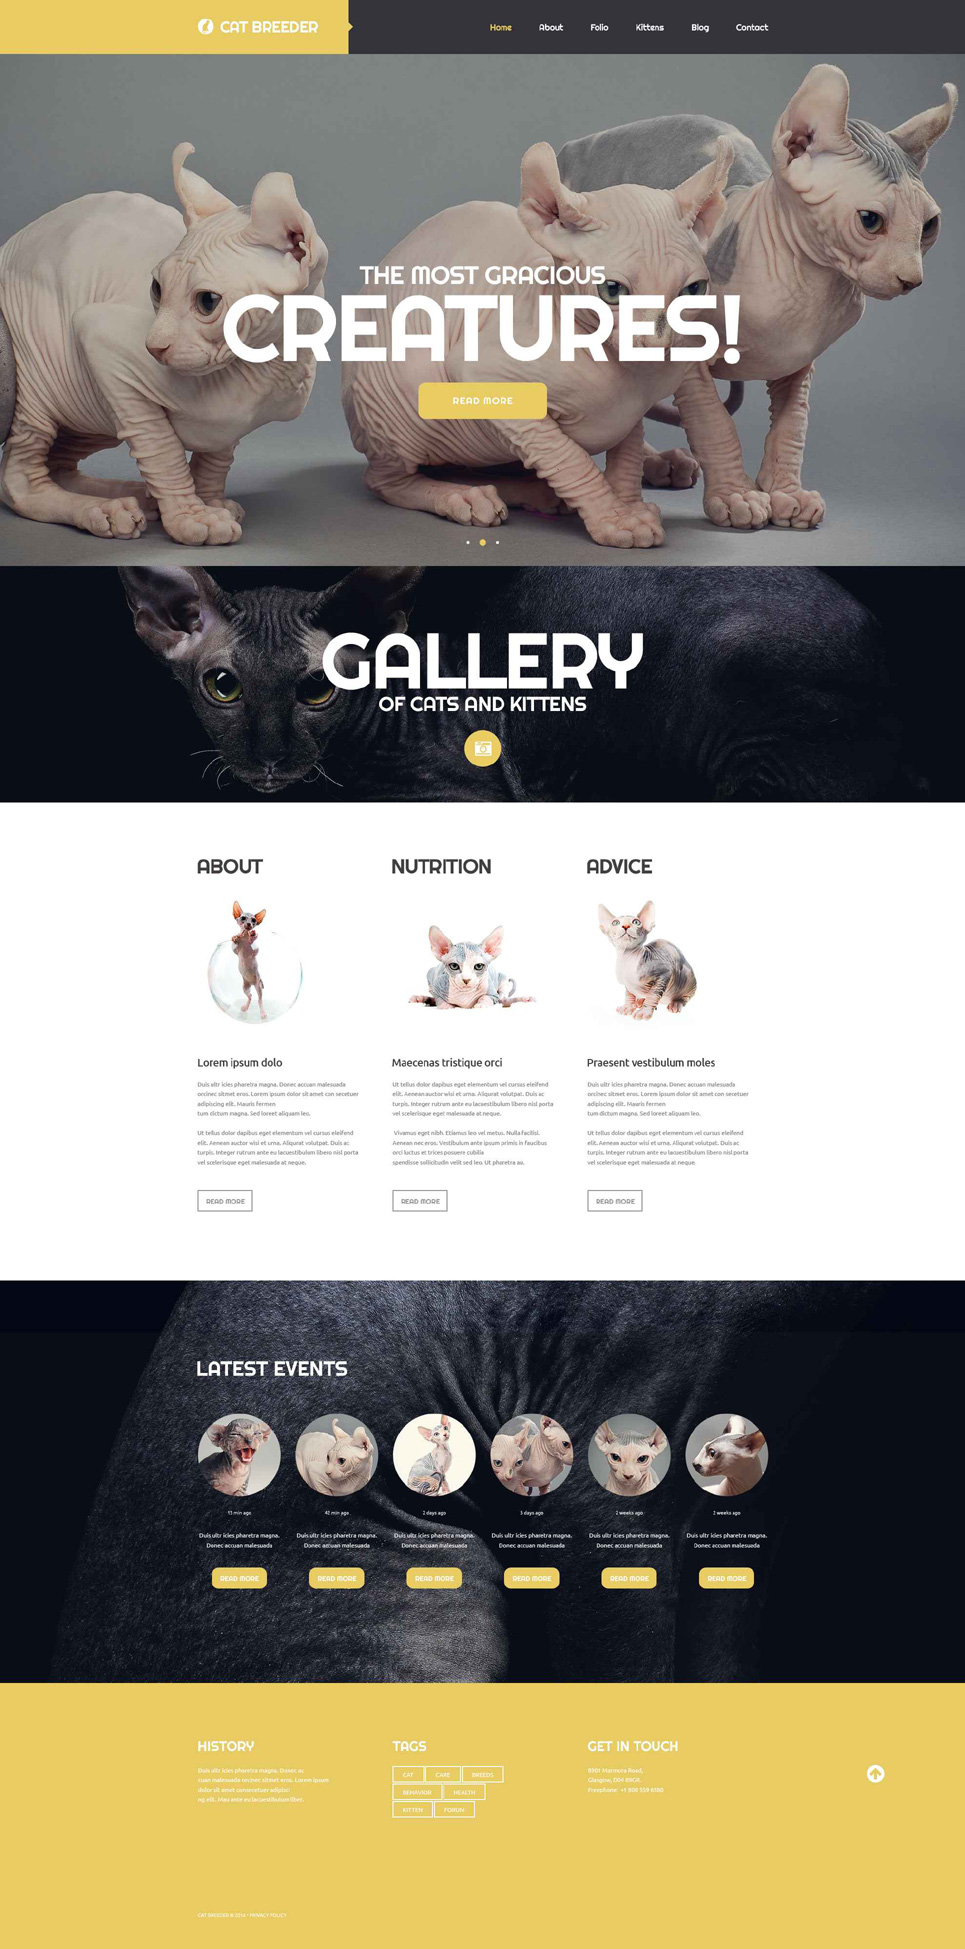 Cat Breeders template illustration image